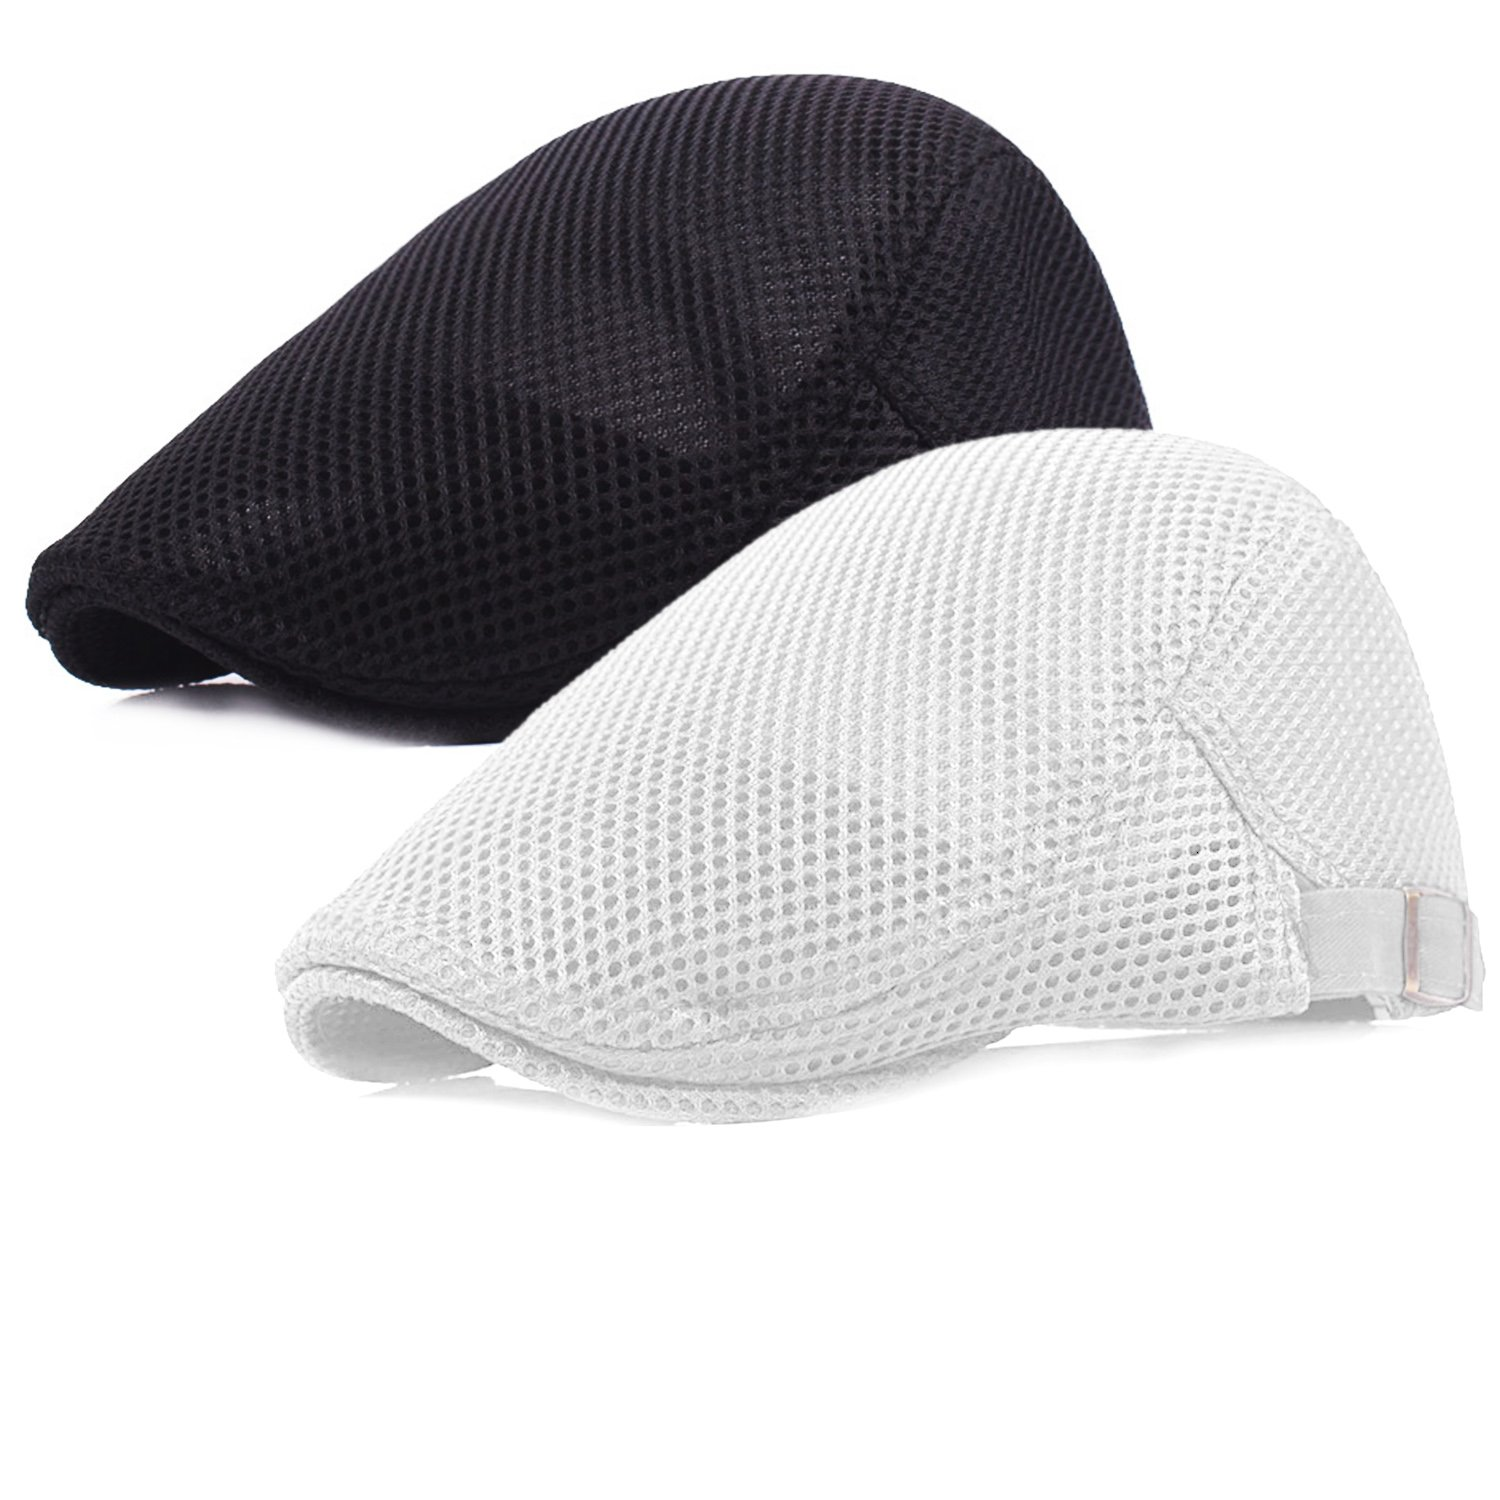 Men Breathable mesh Summer hat Newsboy Beret Ivy Cap Cabbie Flat Cap